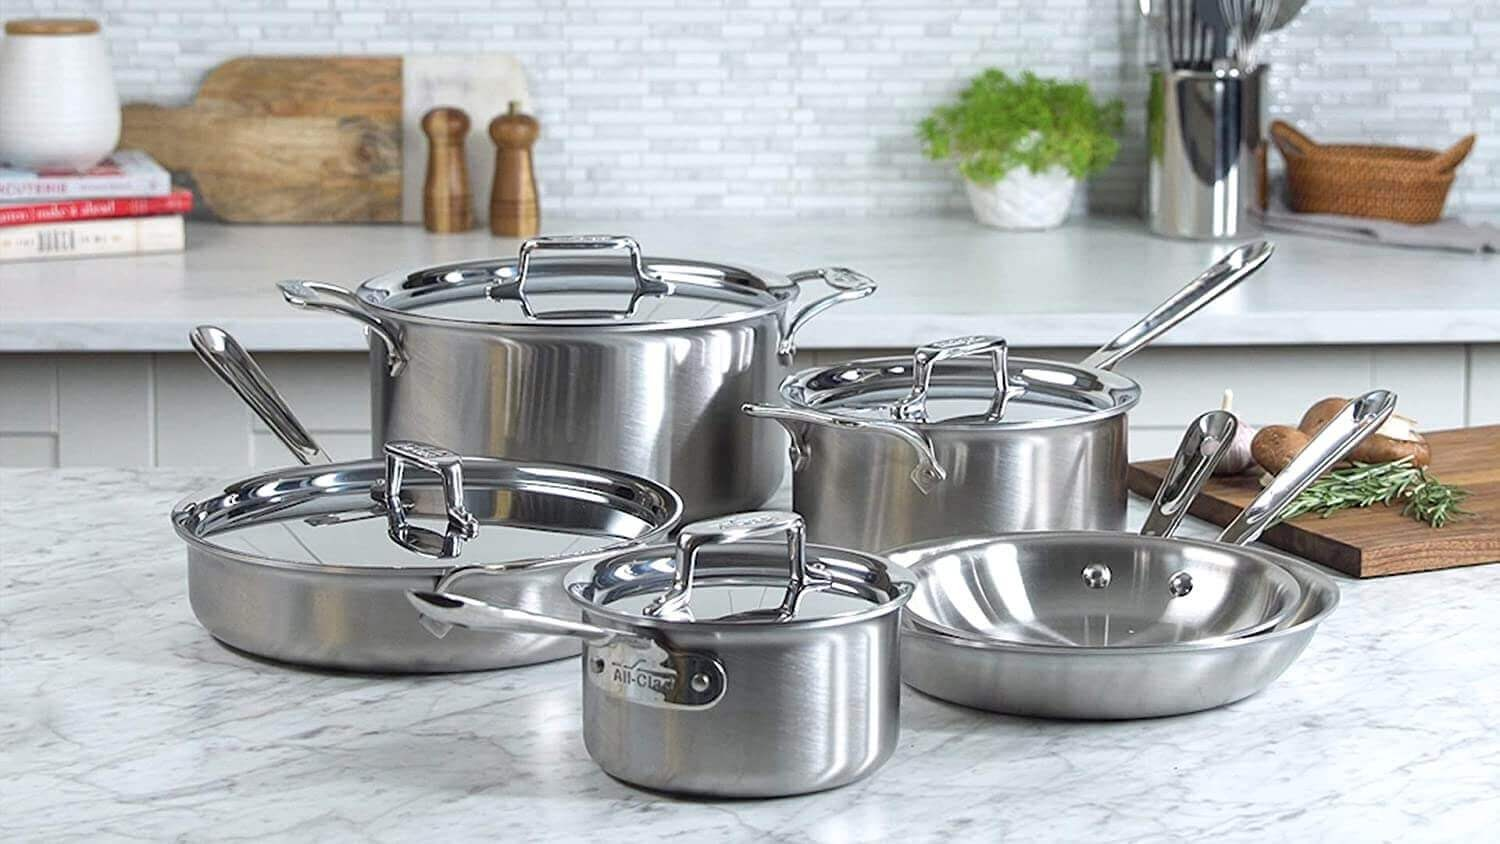 All-Clad d5 Brushed Stainless Steel 10 Piece Set